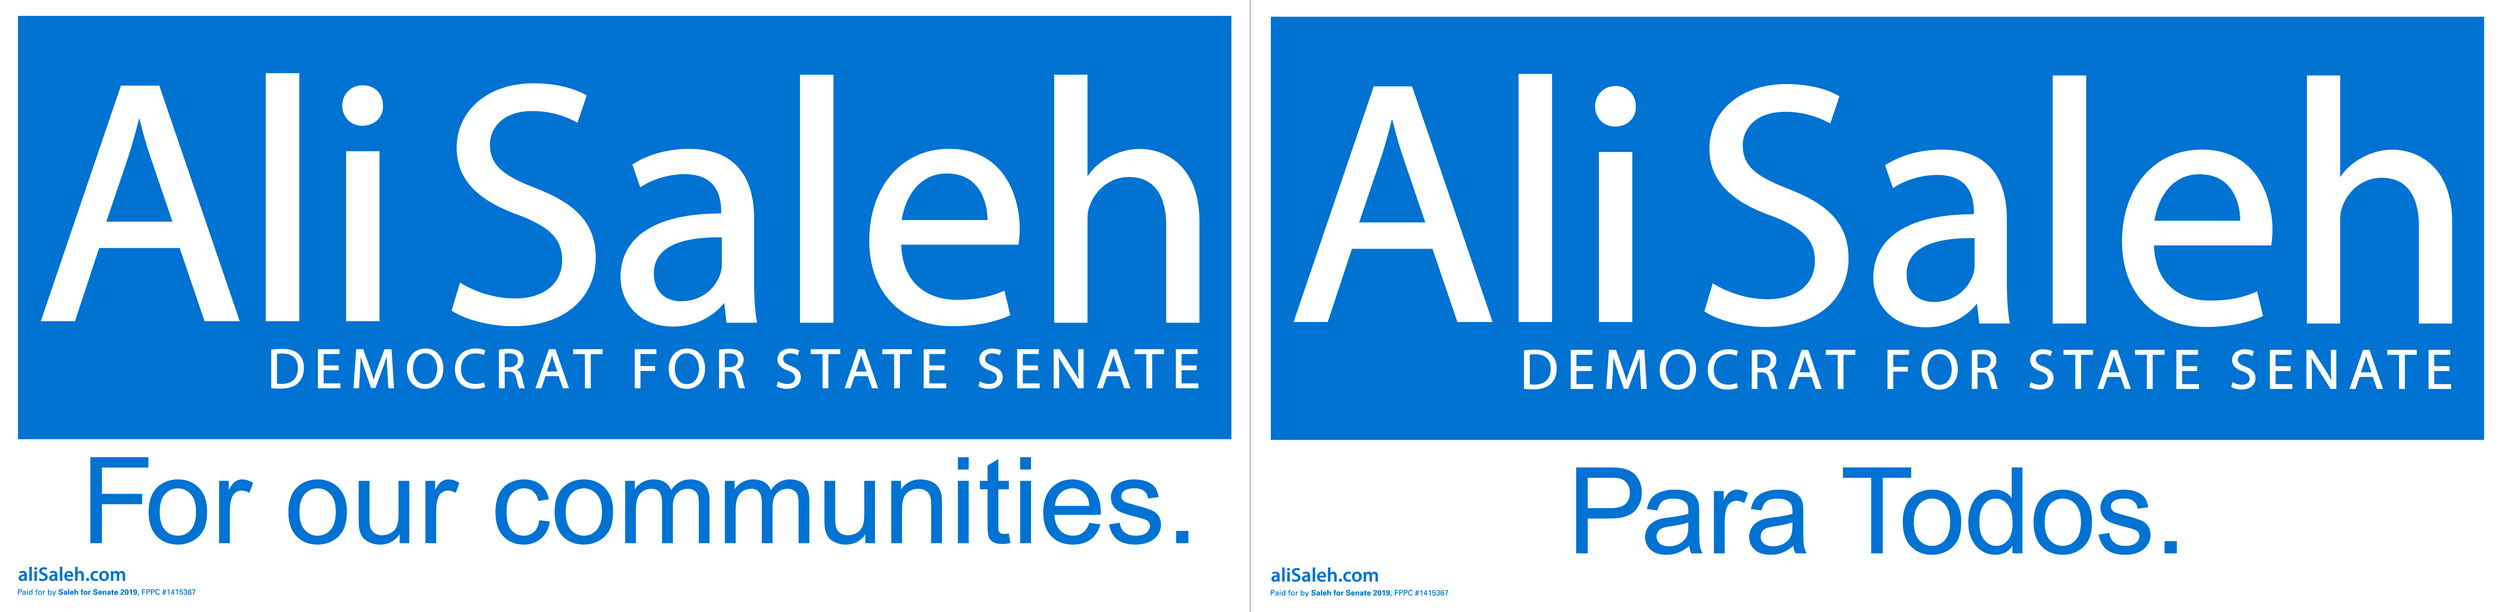 AS-SALEH-LAWN-SIGN.png